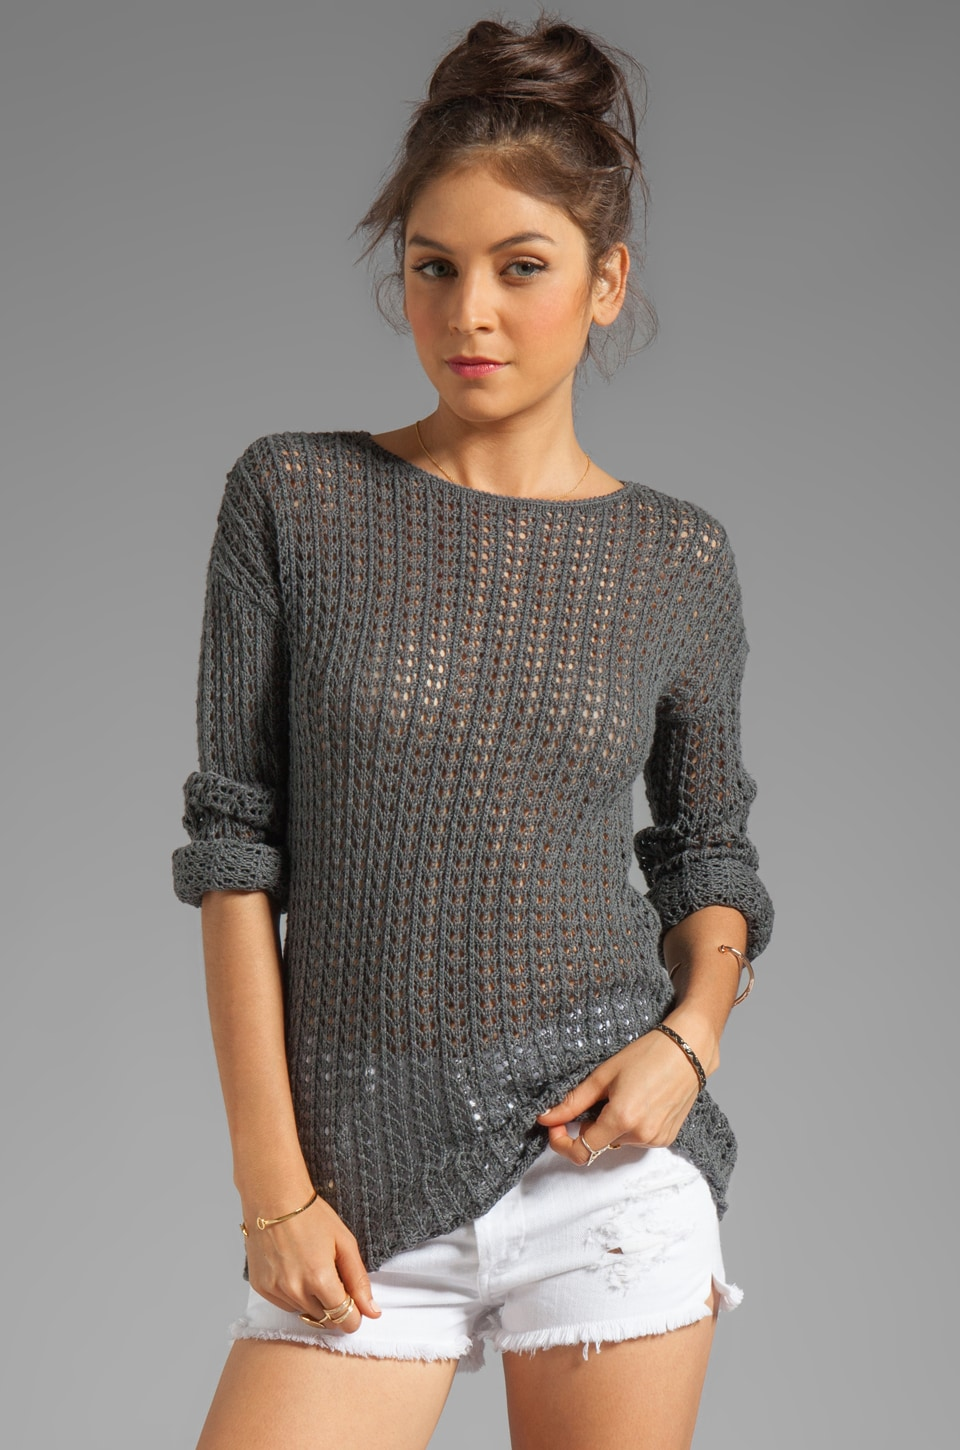 Autumn Cashmere Long Sleeve Open Stitch Sweater in Asphalt